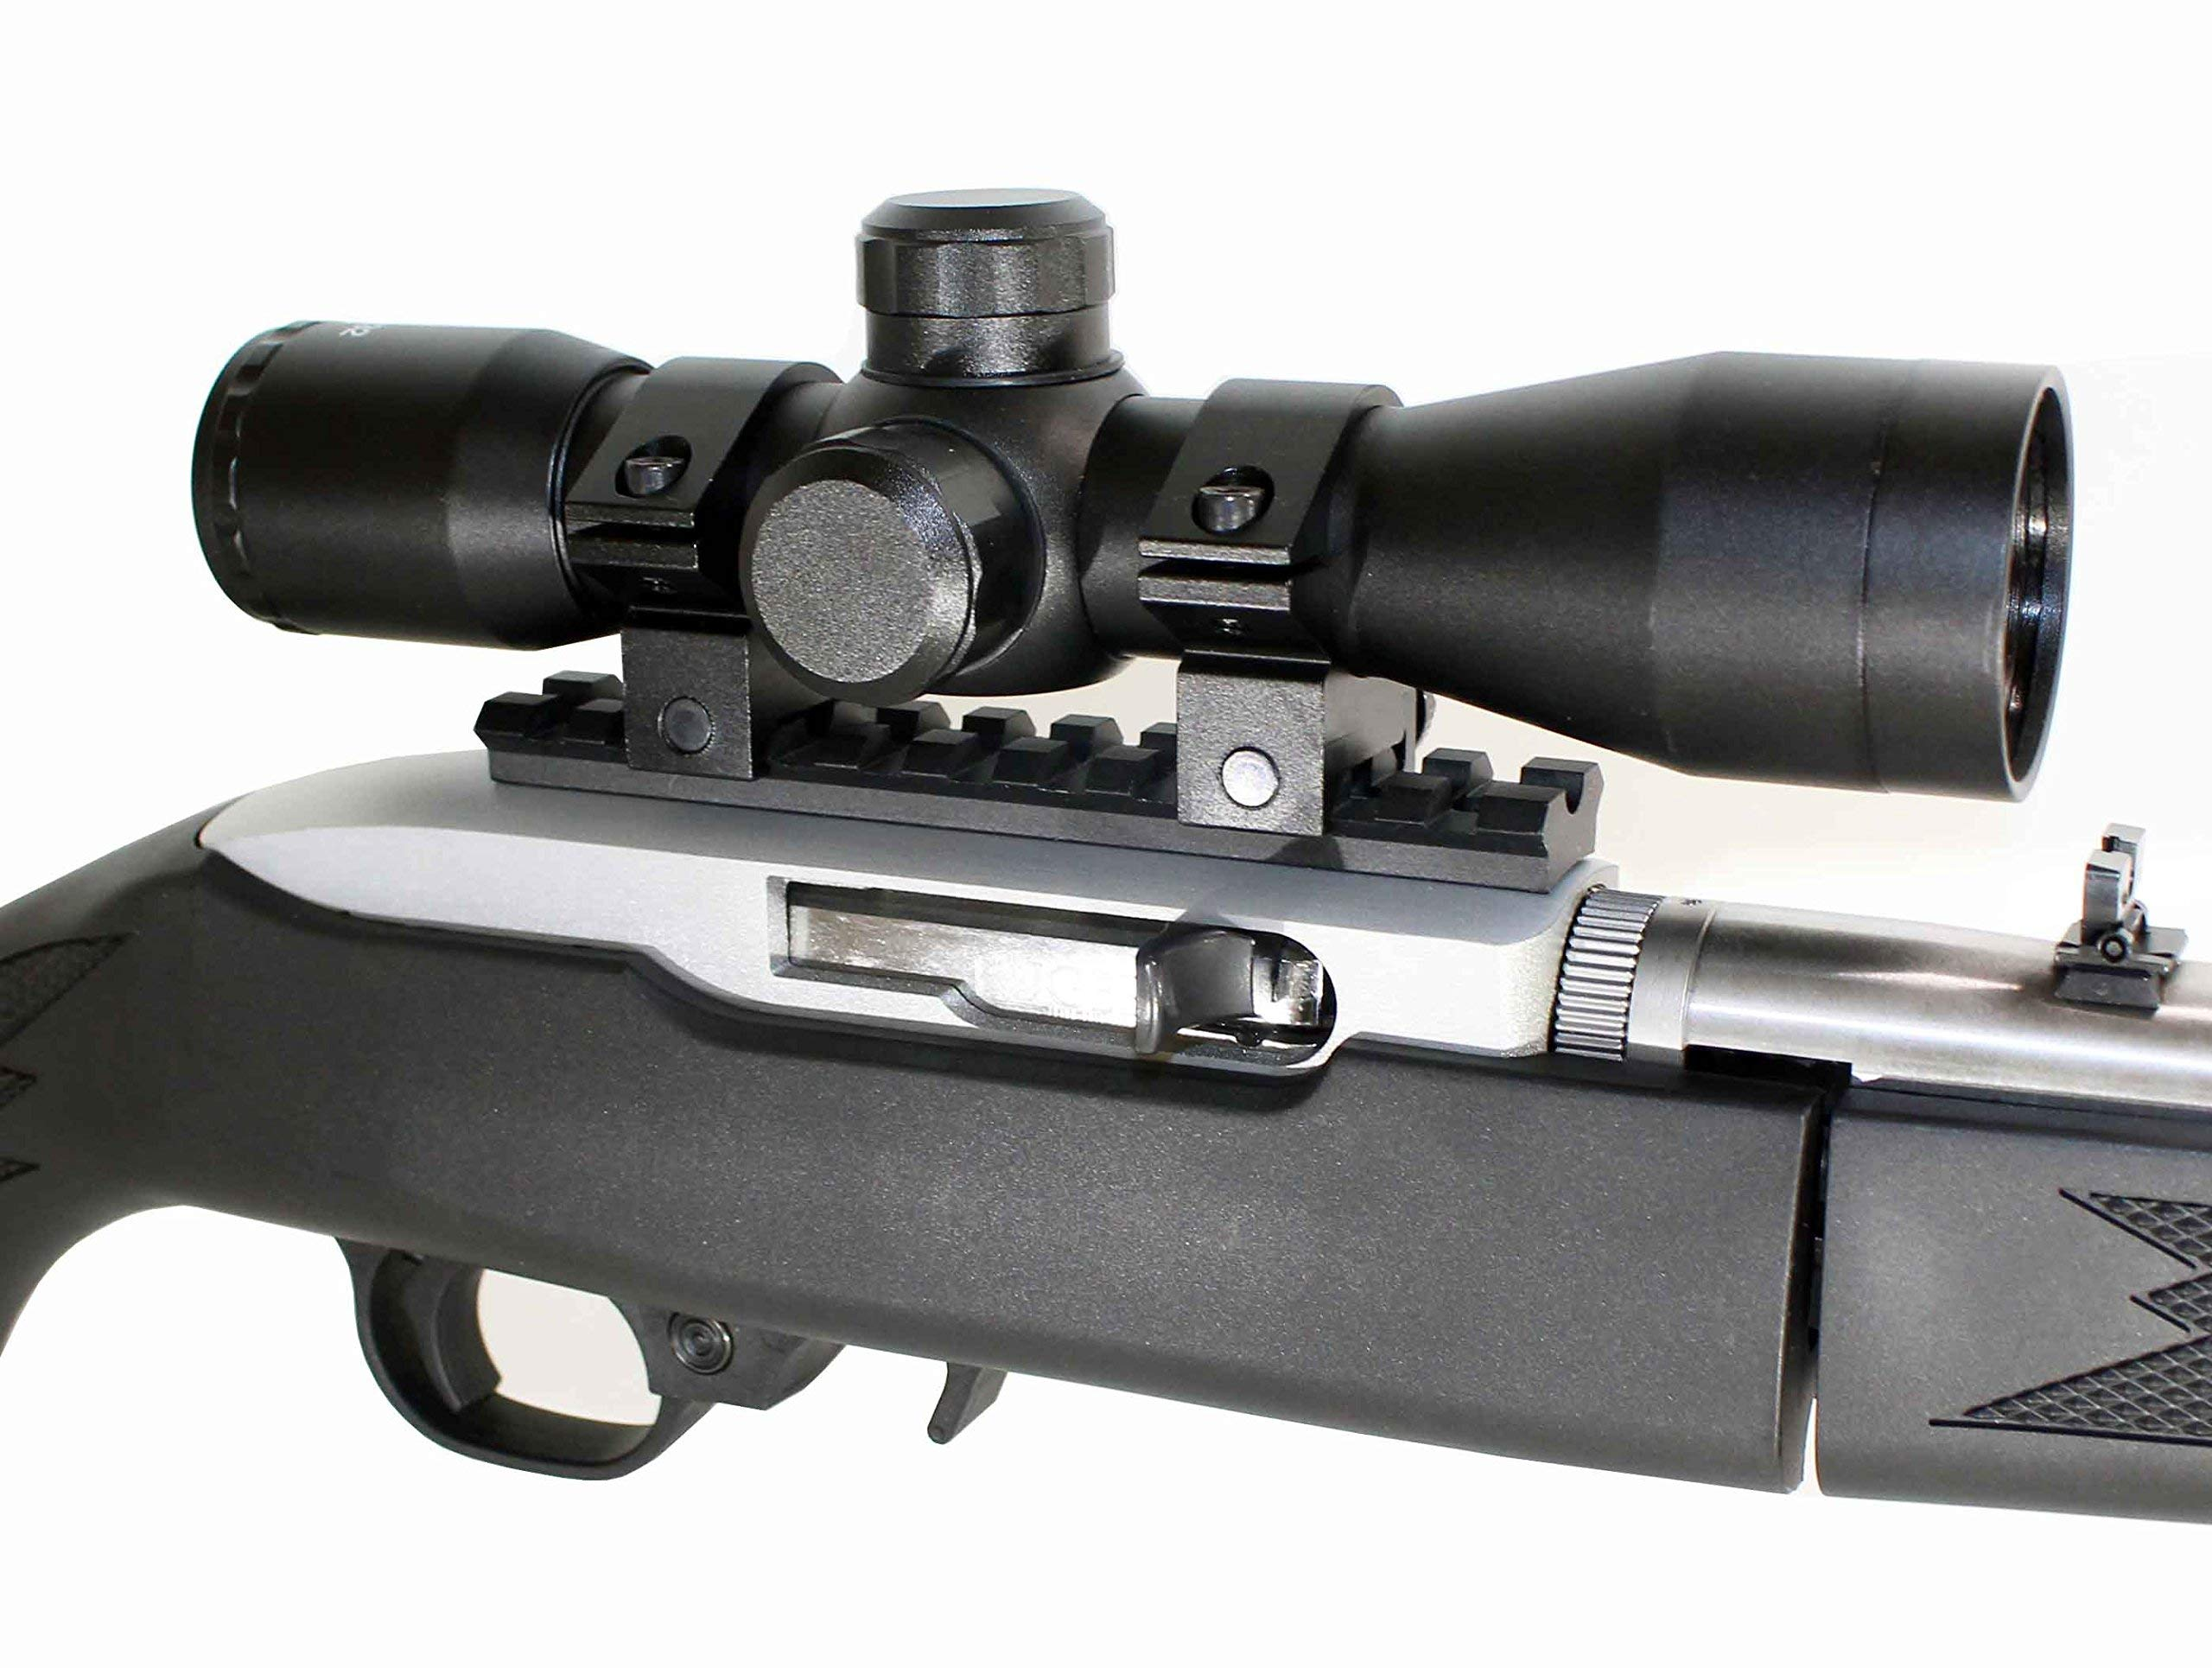 Trinity Ruger 10/22 Combo Kit with 4x32 Scope Rings Rail Mount Base Picatinny Weaver Single Rail Aluminum Black mildot Reticle Hunting Tactical by Trinity